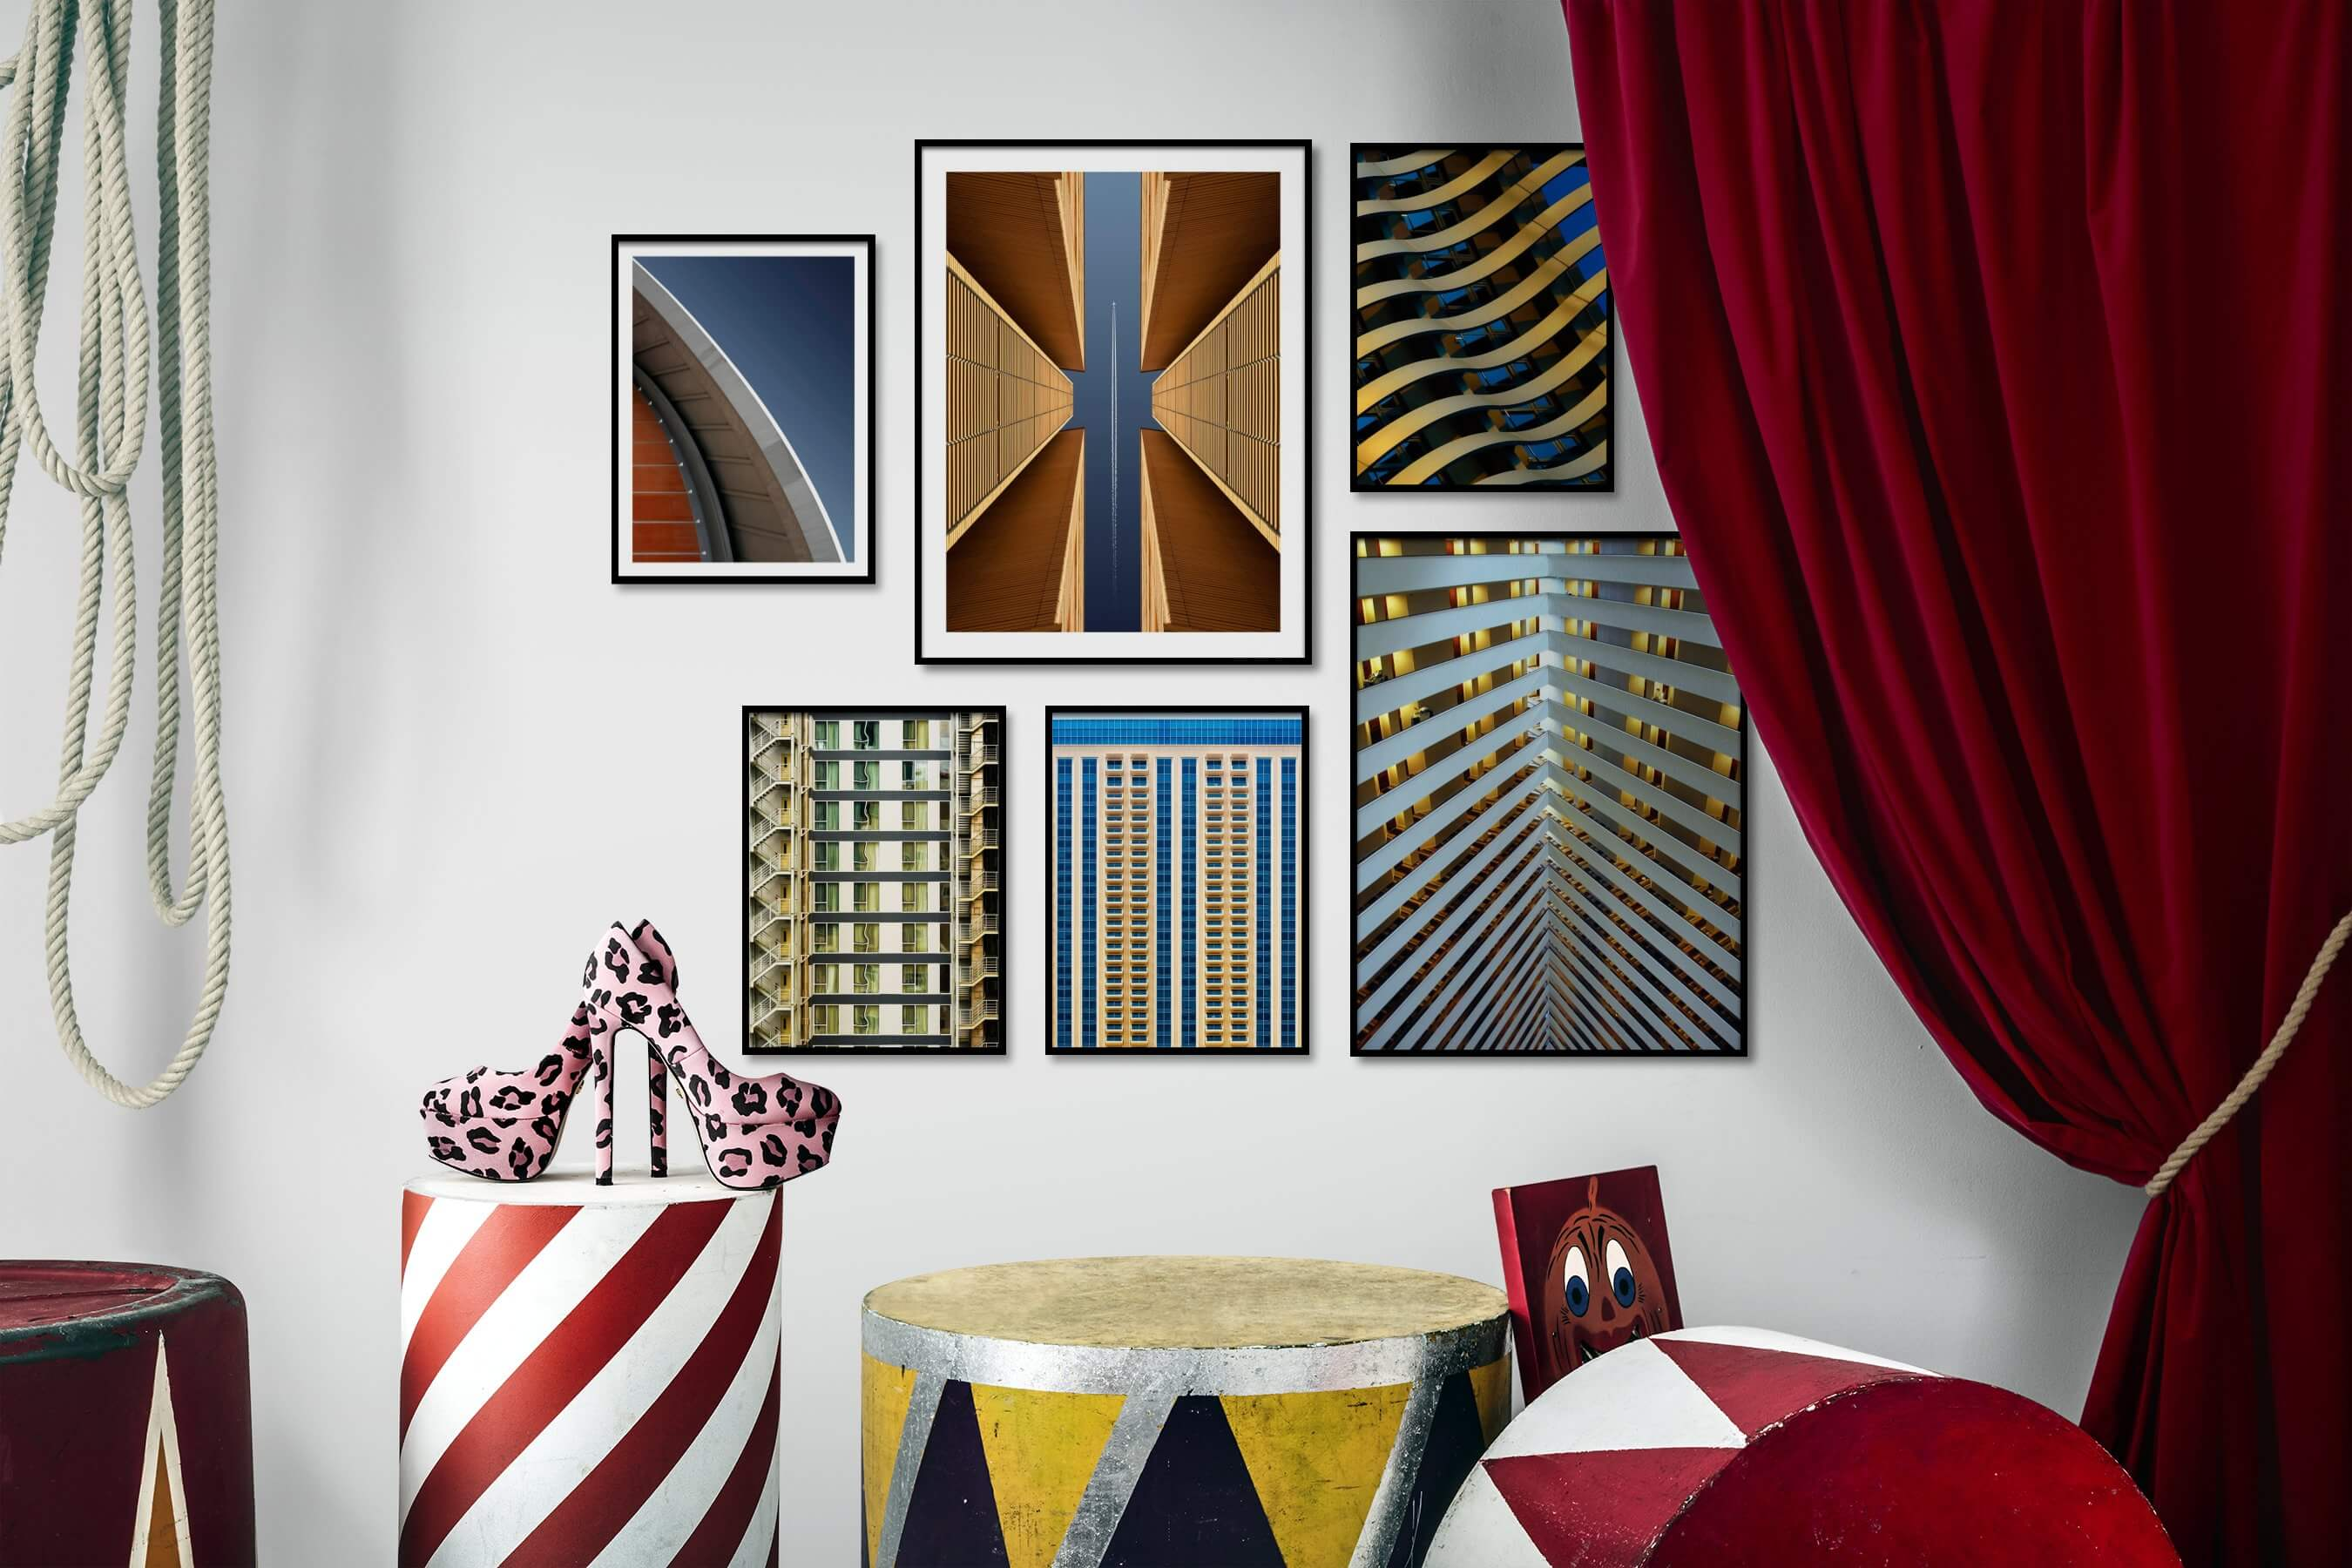 Gallery wall idea with six framed pictures arranged on a wall depicting For the Minimalist, For the Moderate, For the Maximalist, and City Life